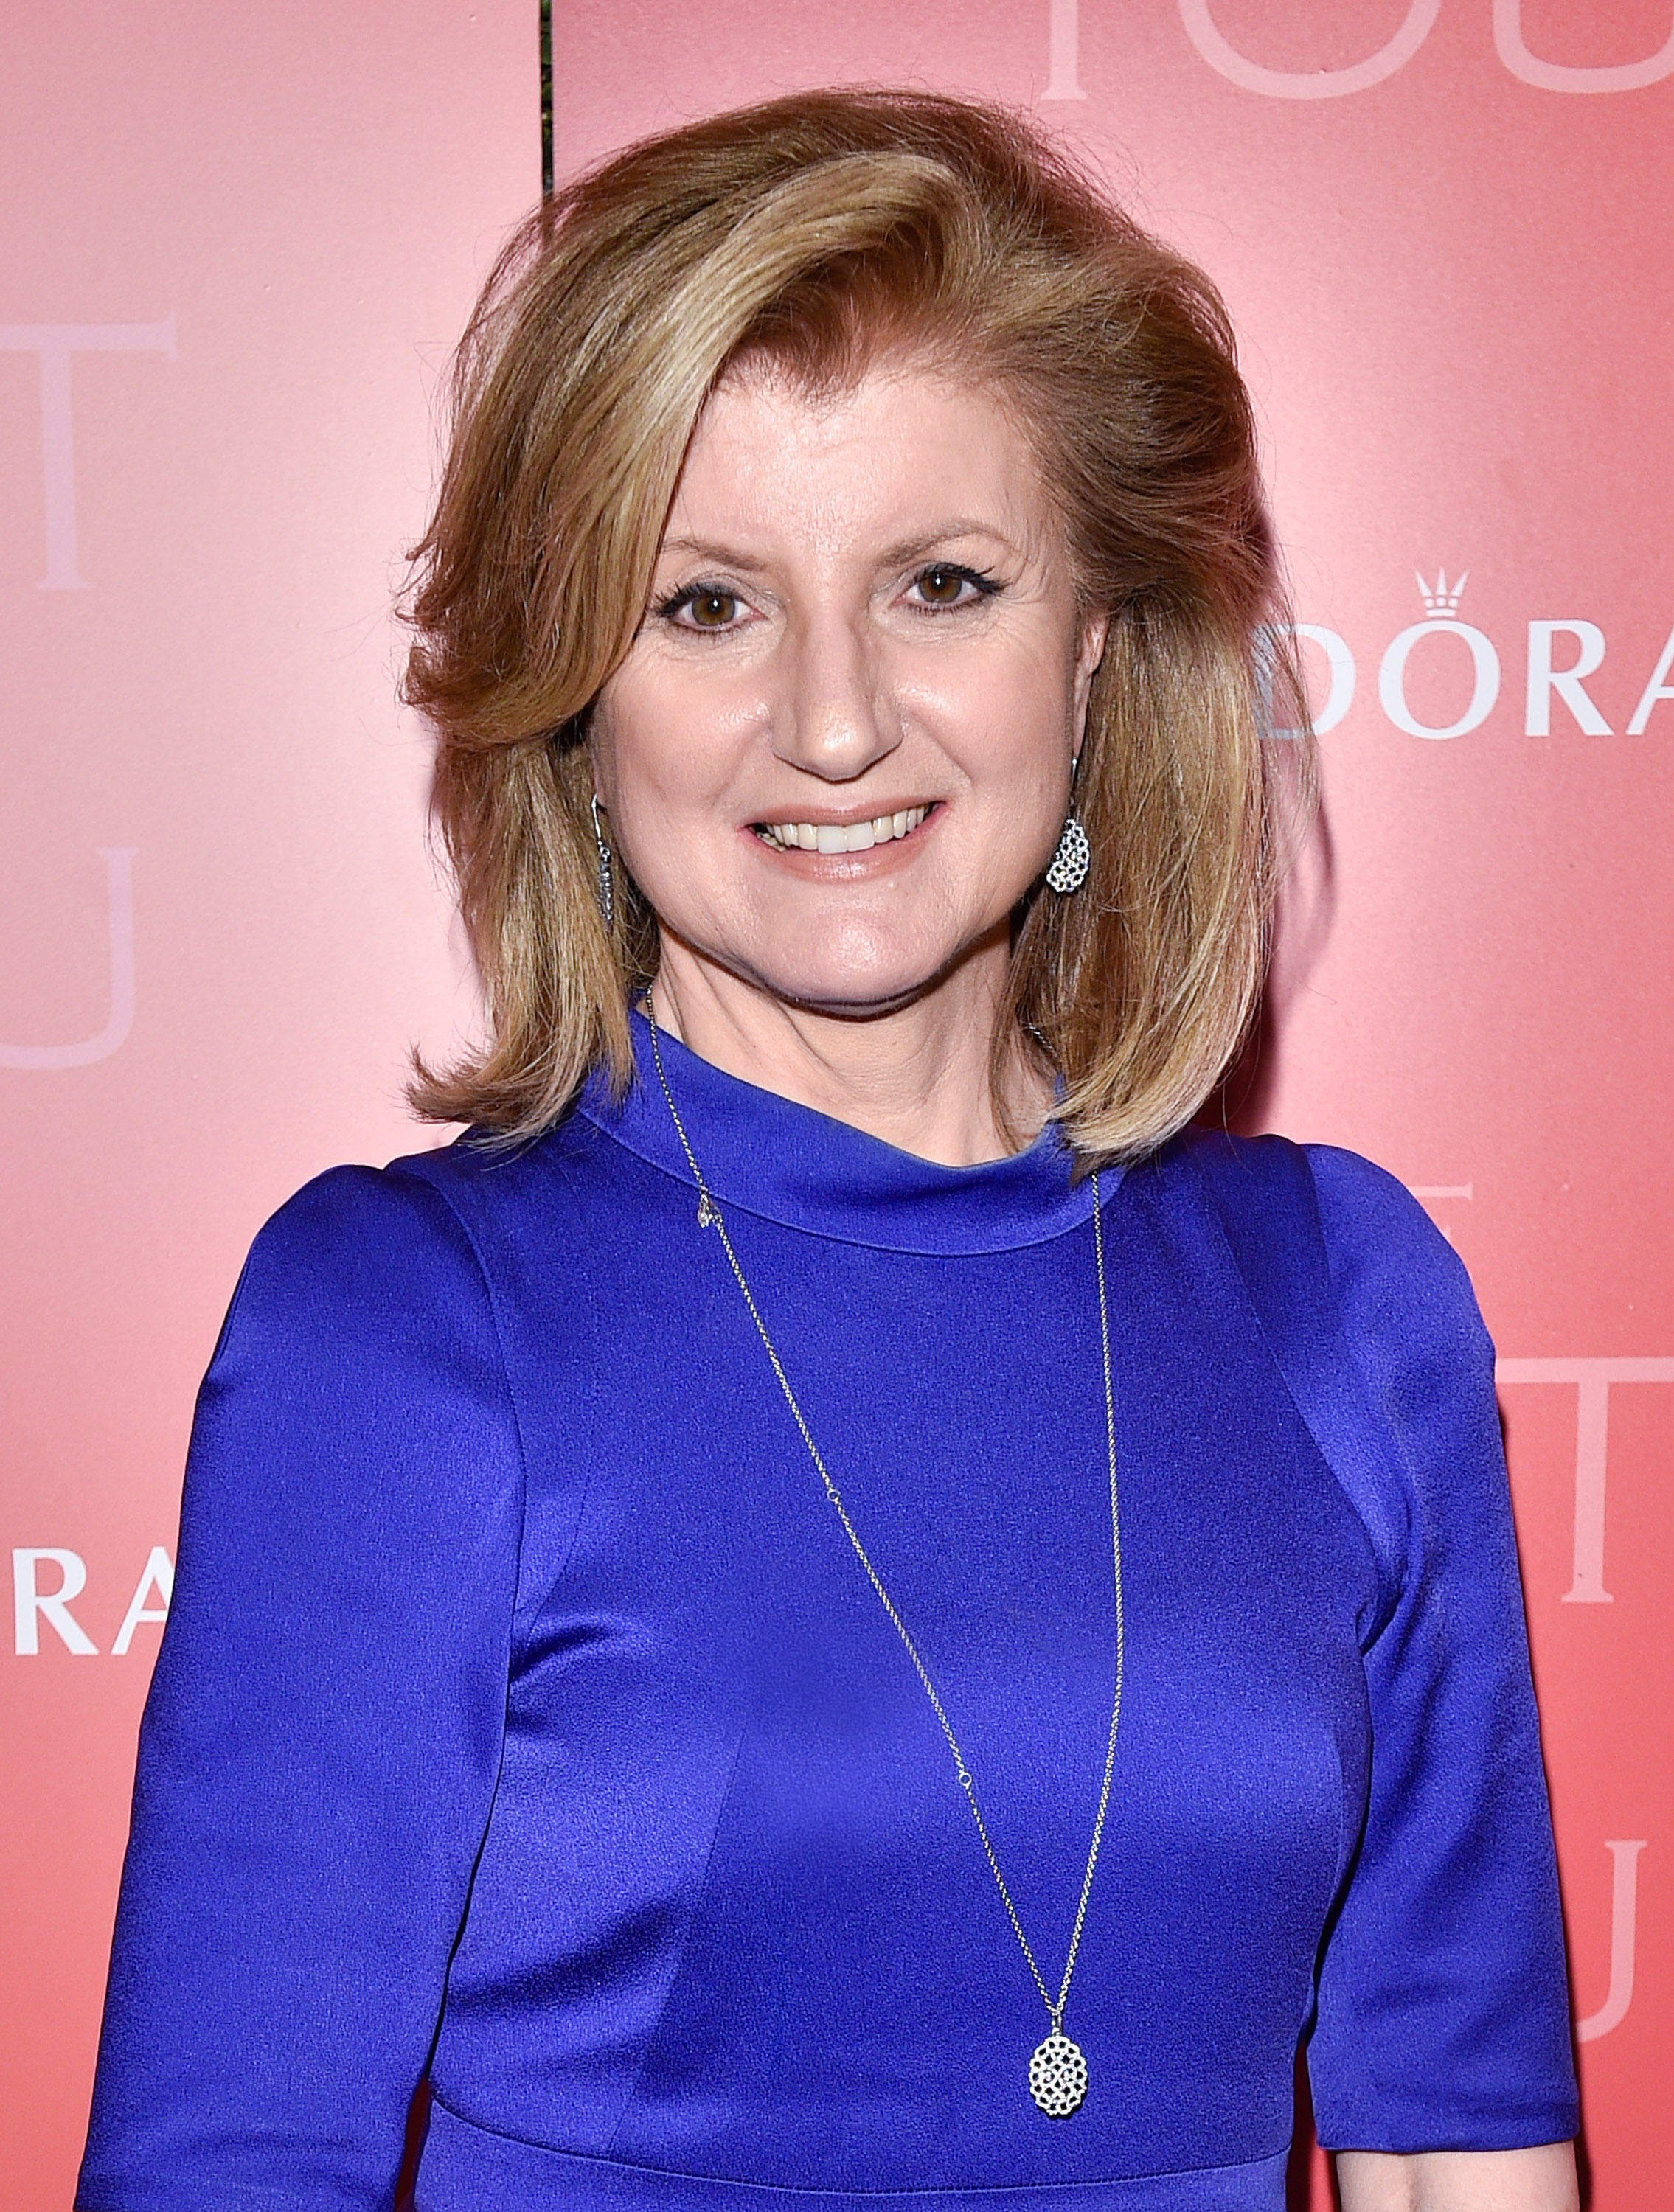 Arianna Huffington at Unique Lives event in Toronto on June 1, 2015.